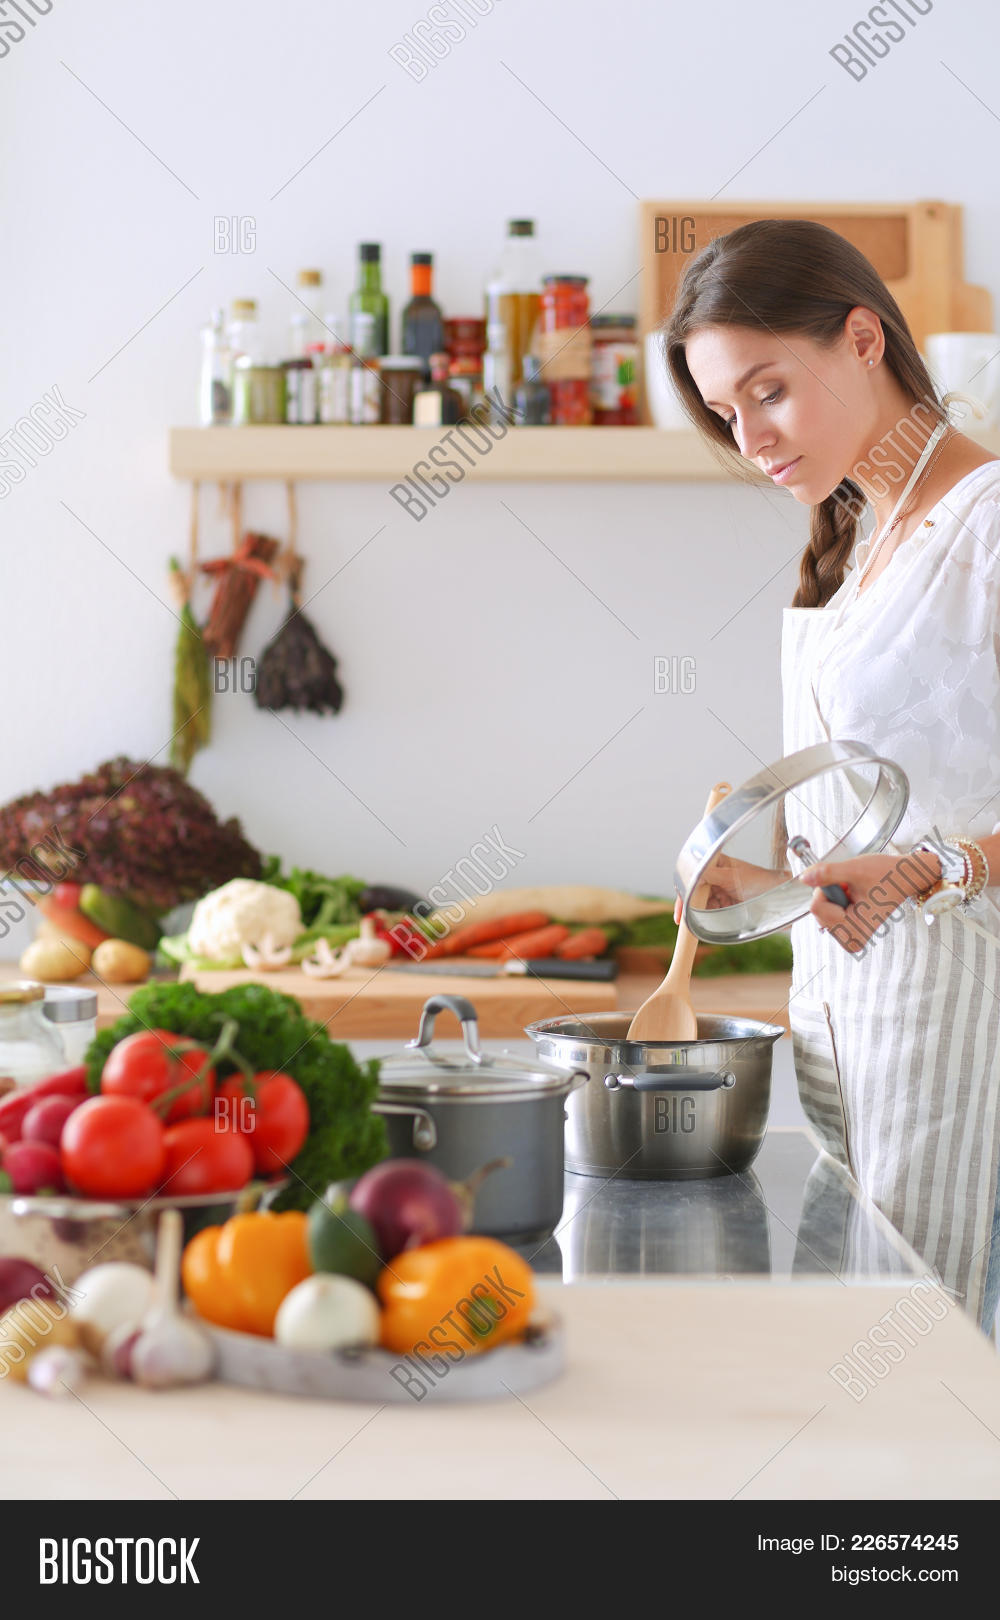 Cooking Woman Kitchen Image & Photo (Free Trial) | Bigstock